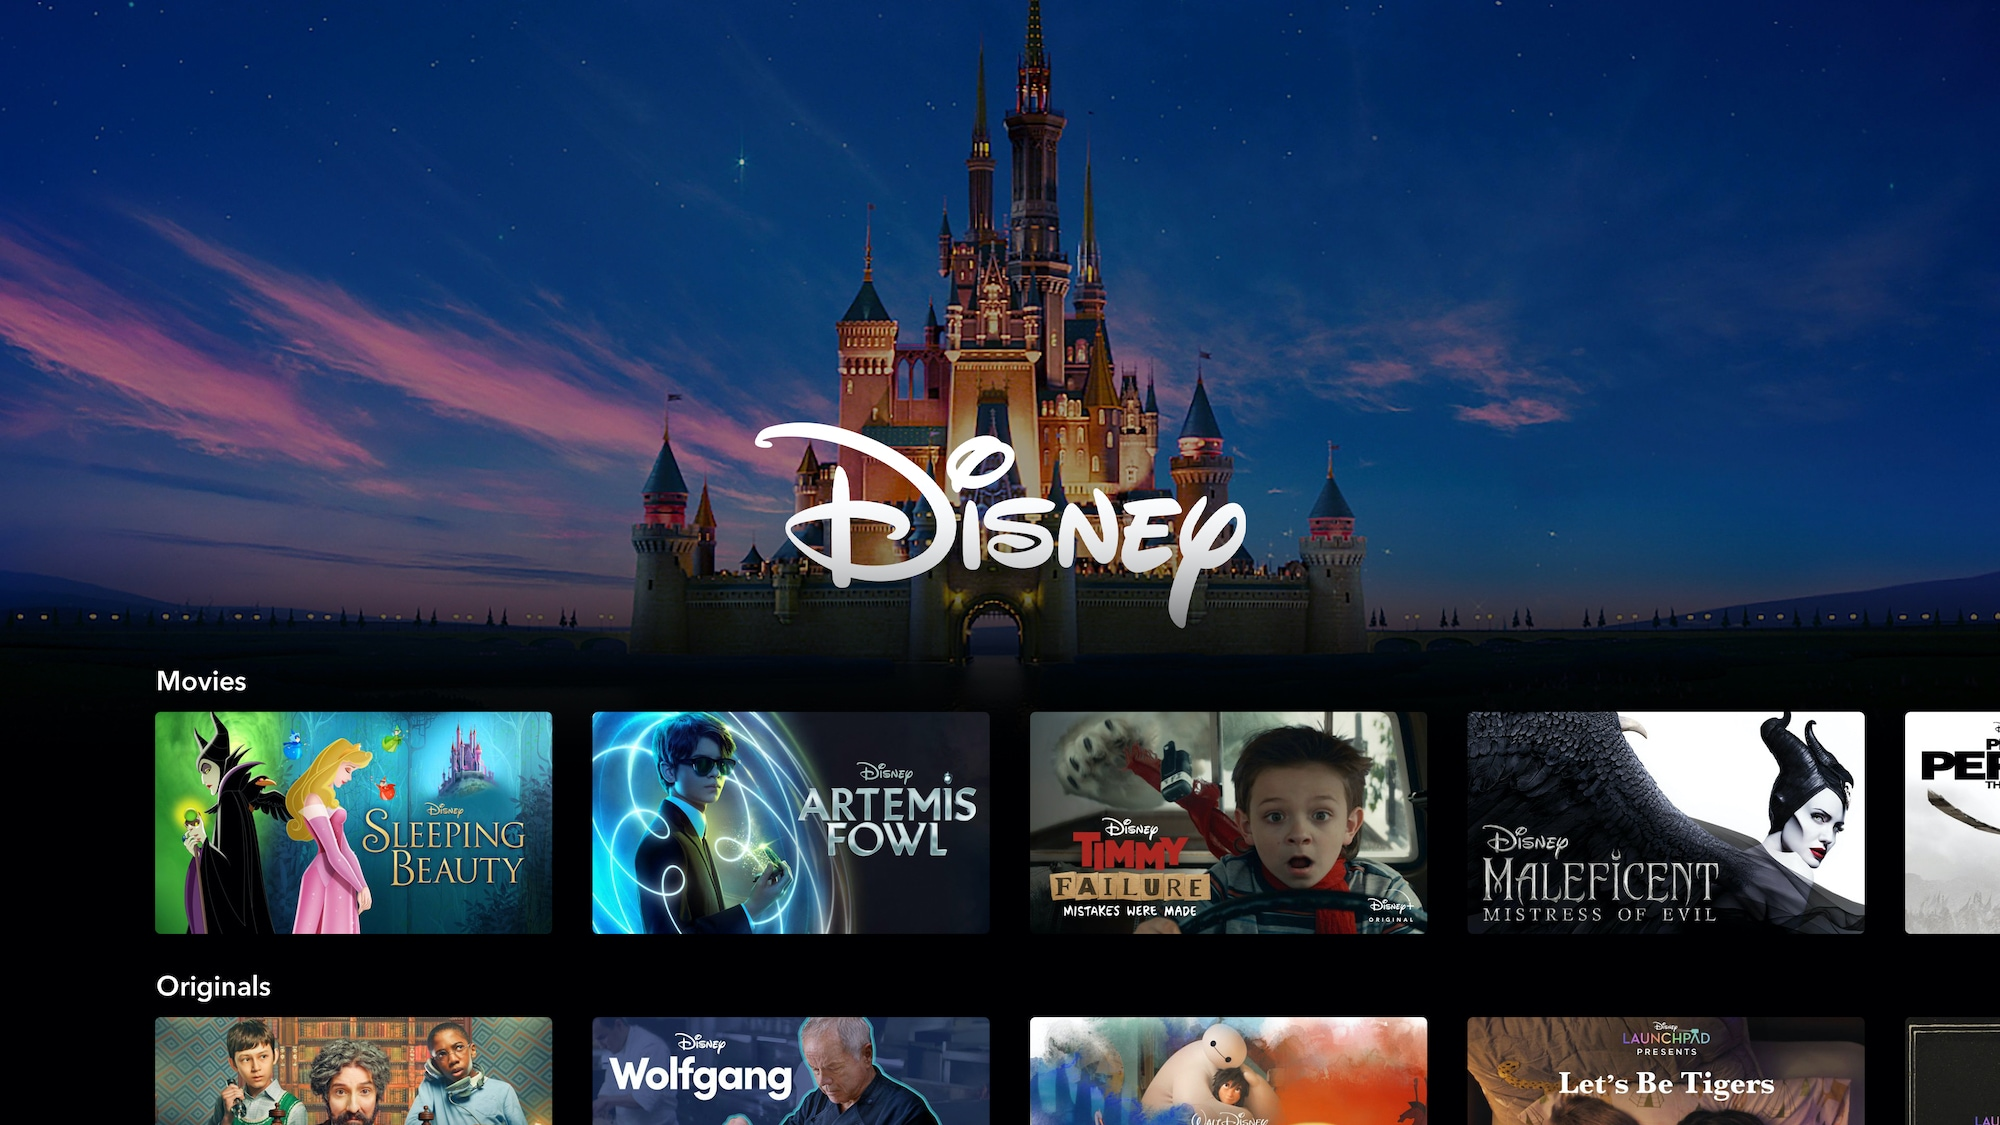 Disney+ Brand Landing Page on Connected TV